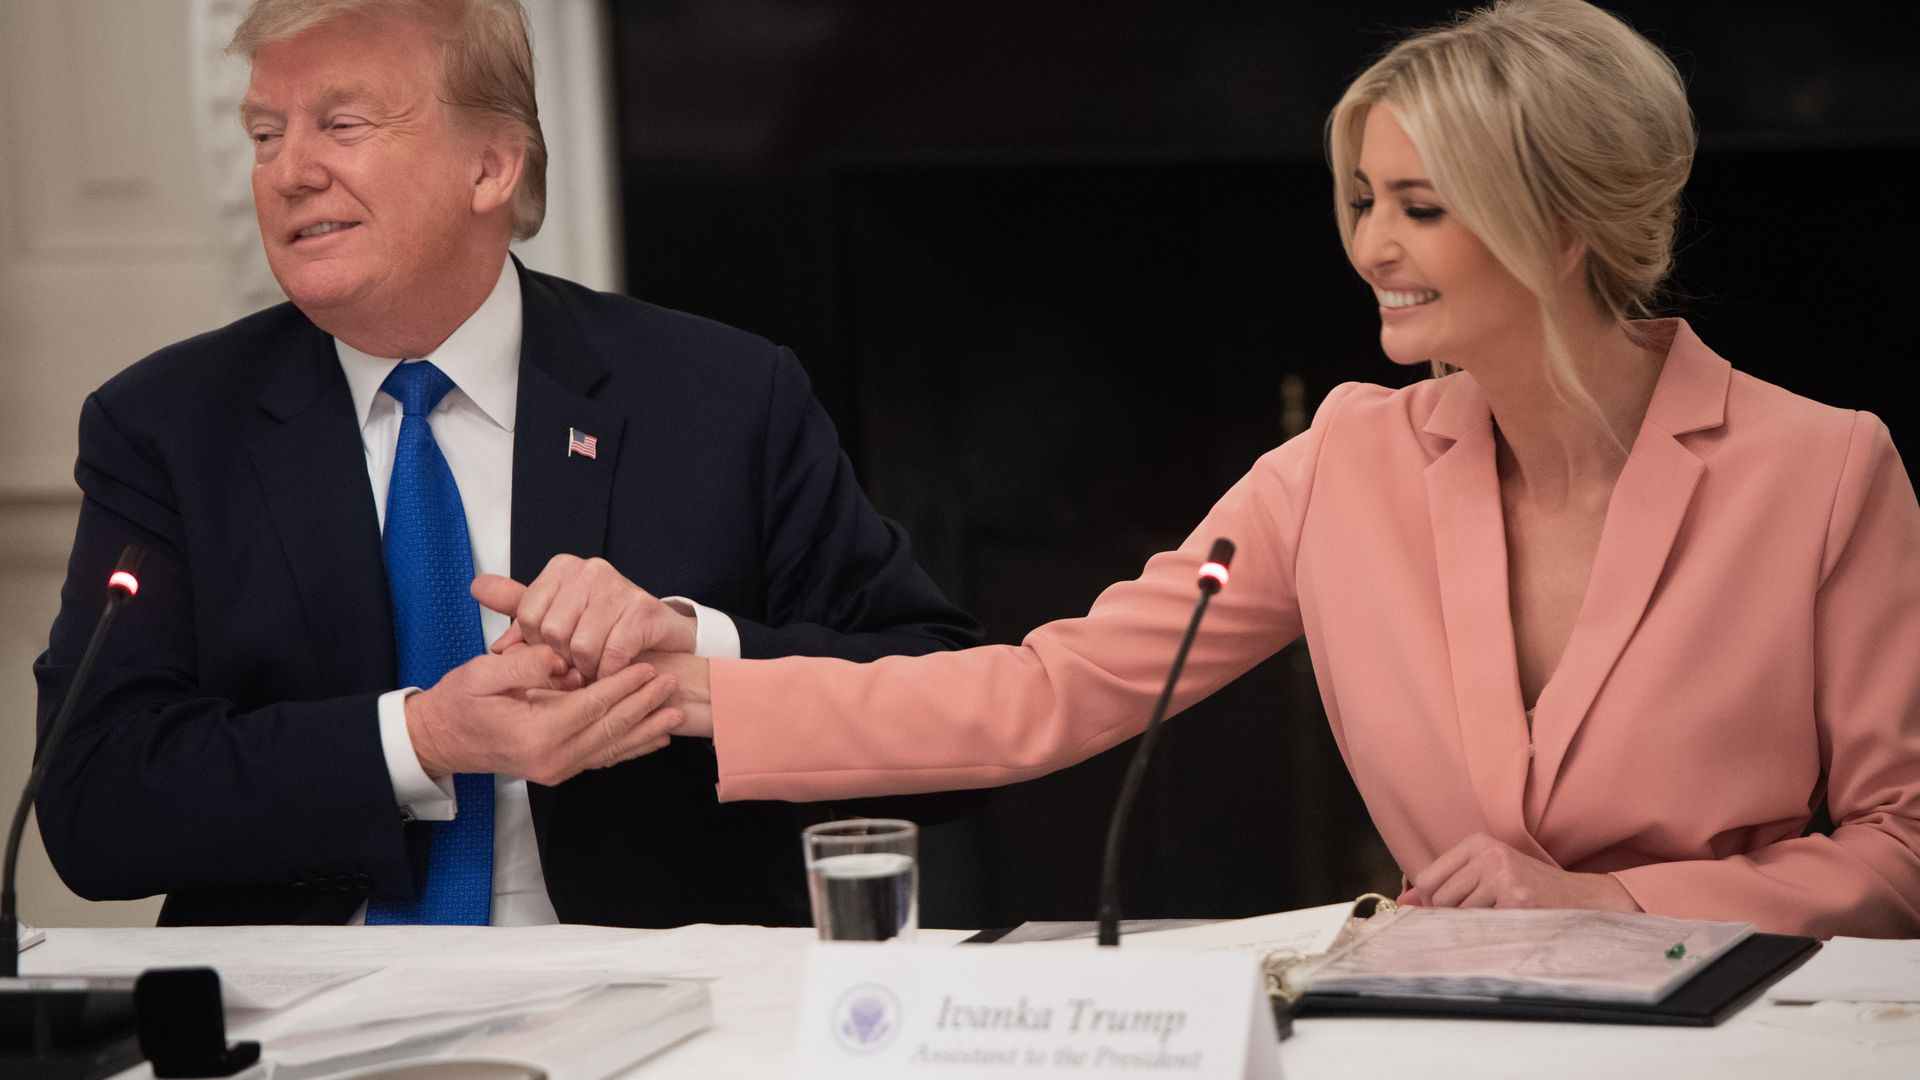 Ivanka Trump confirms Trump asked if she'd be interested in World Bank job